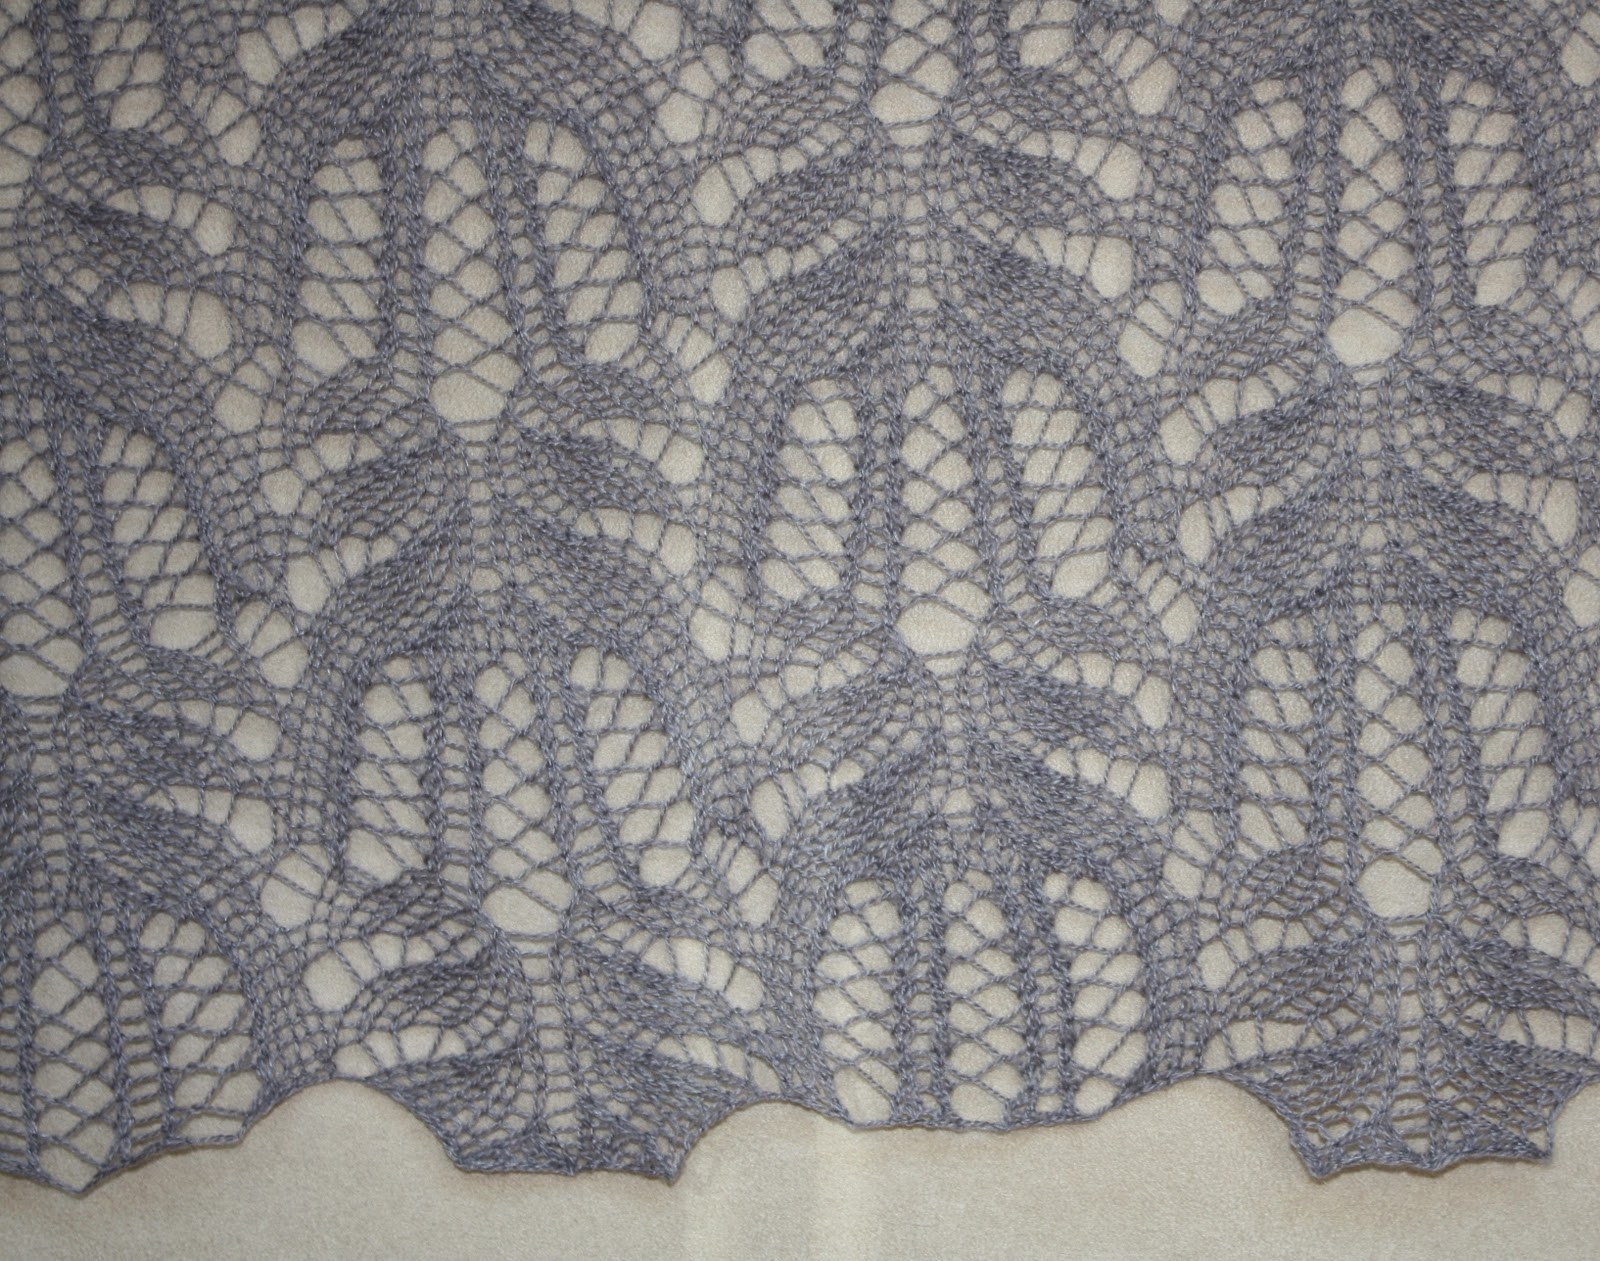 Free Knitted Lace Patterns : PATTERNS FOR KNITTED LACE   Browse Patterns